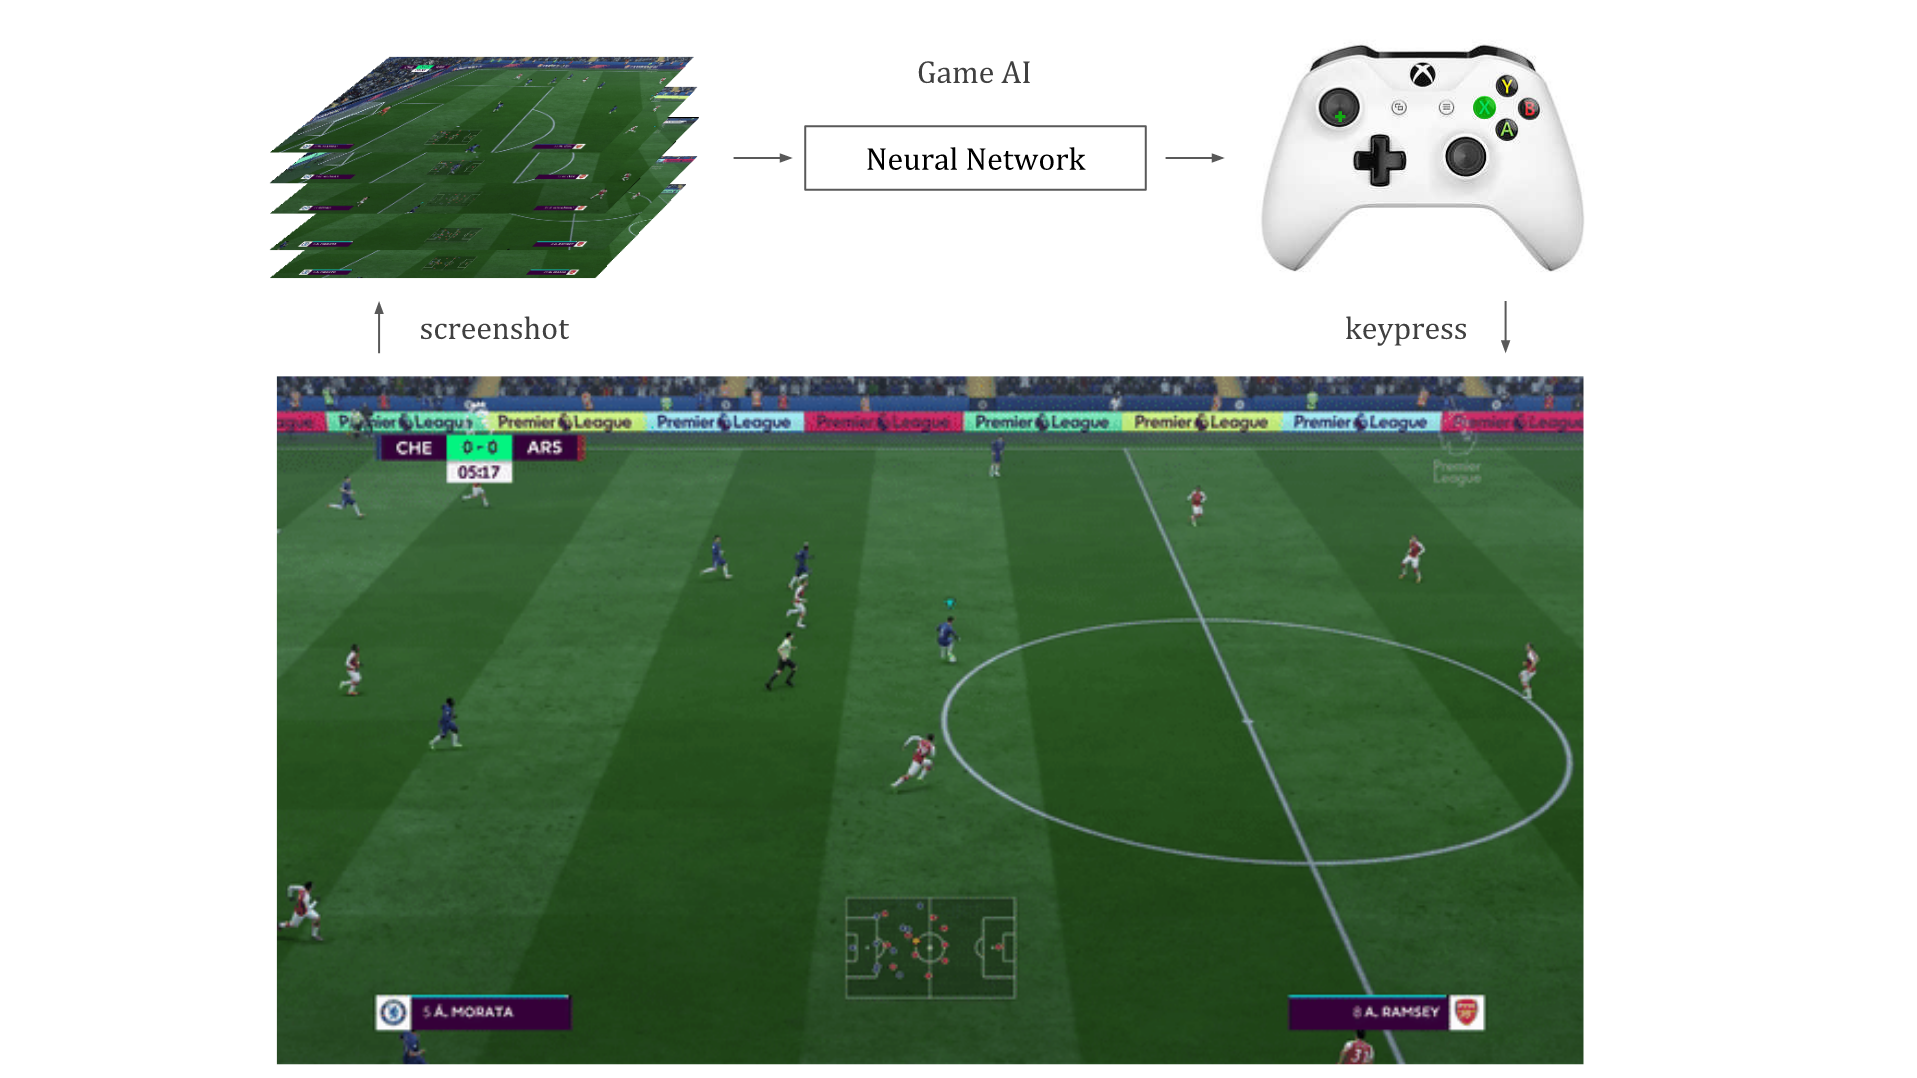 Building a Deep Neural Network to play FIFA 18 - Towards